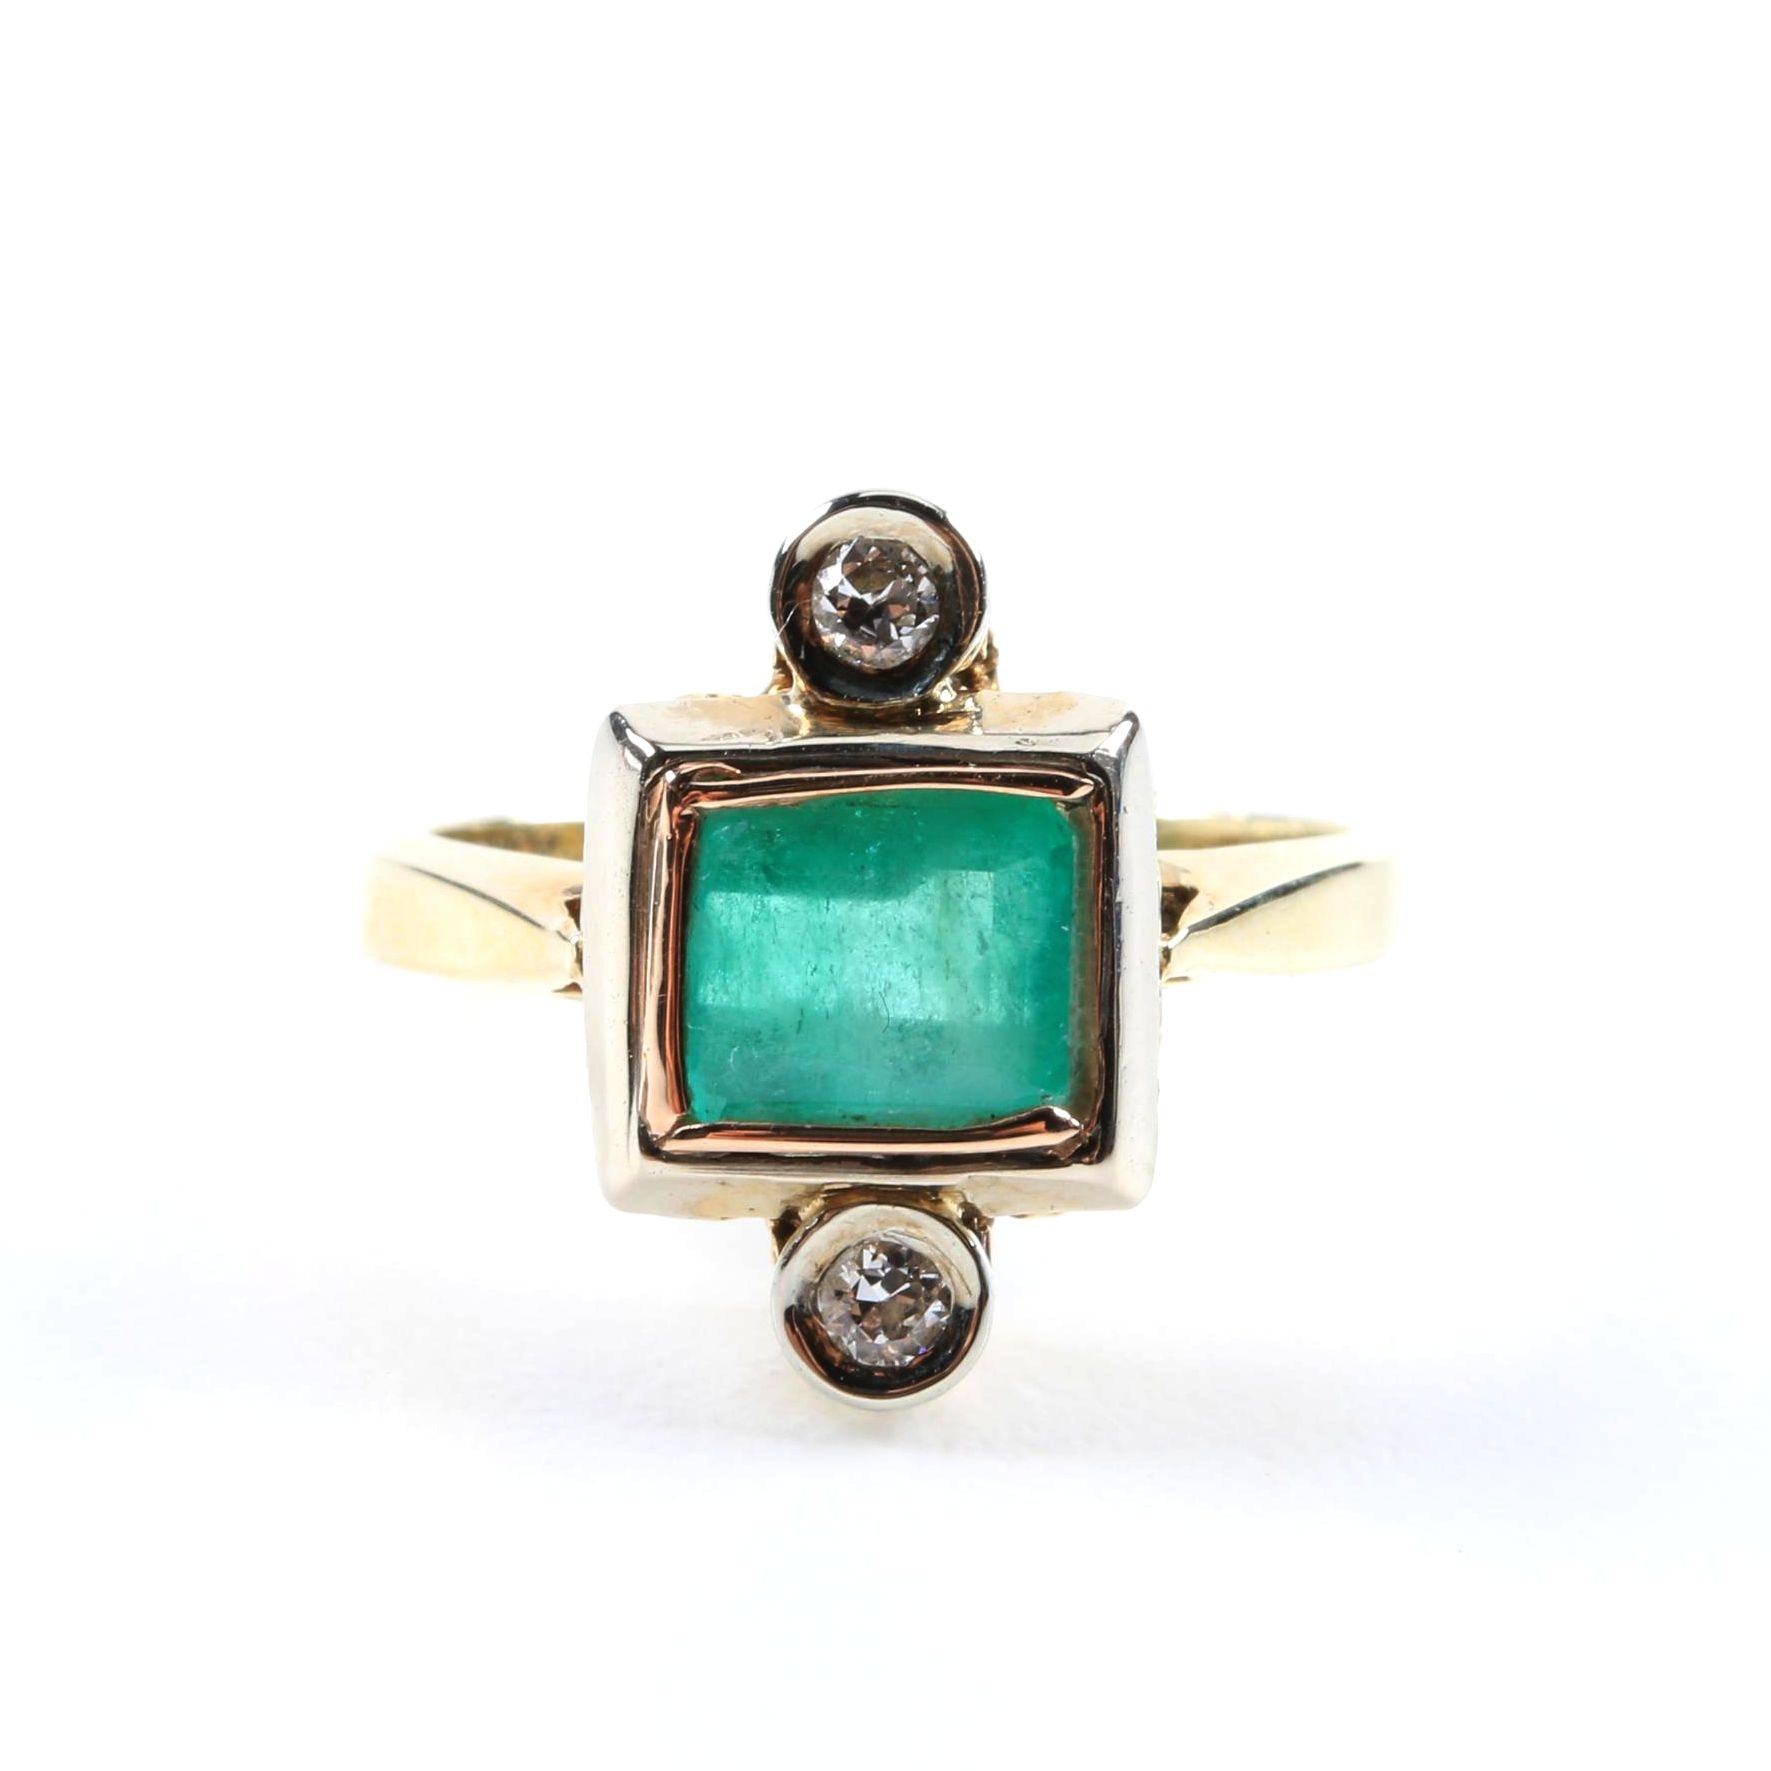 14K Yellow Gold Ring with Emerald and Diamonds